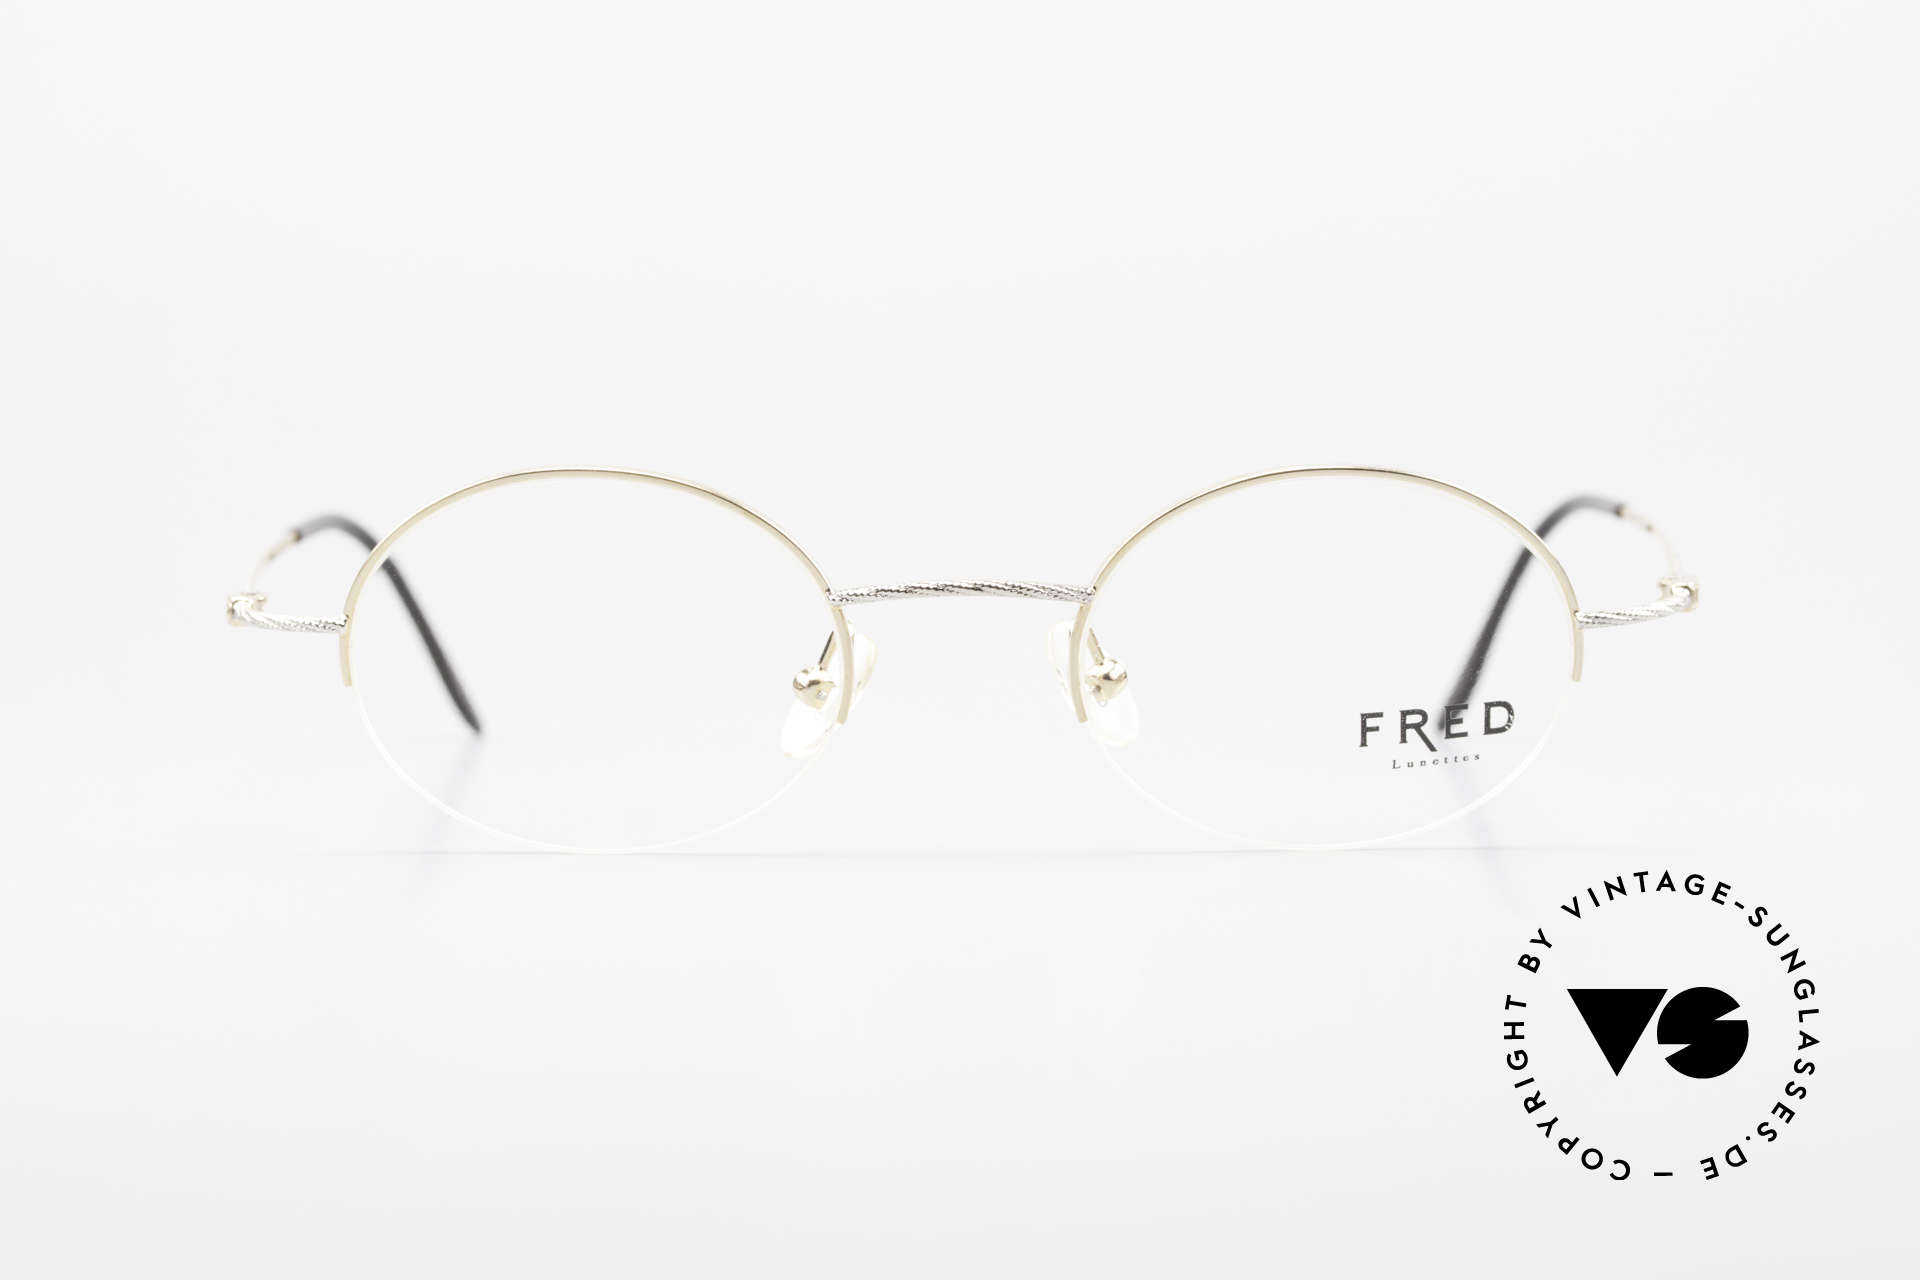 Fred F10 L02 90's Luxury Frame Semi Rimless, marine design (distinctive Fred) in high-end quality!, Made for Men and Women